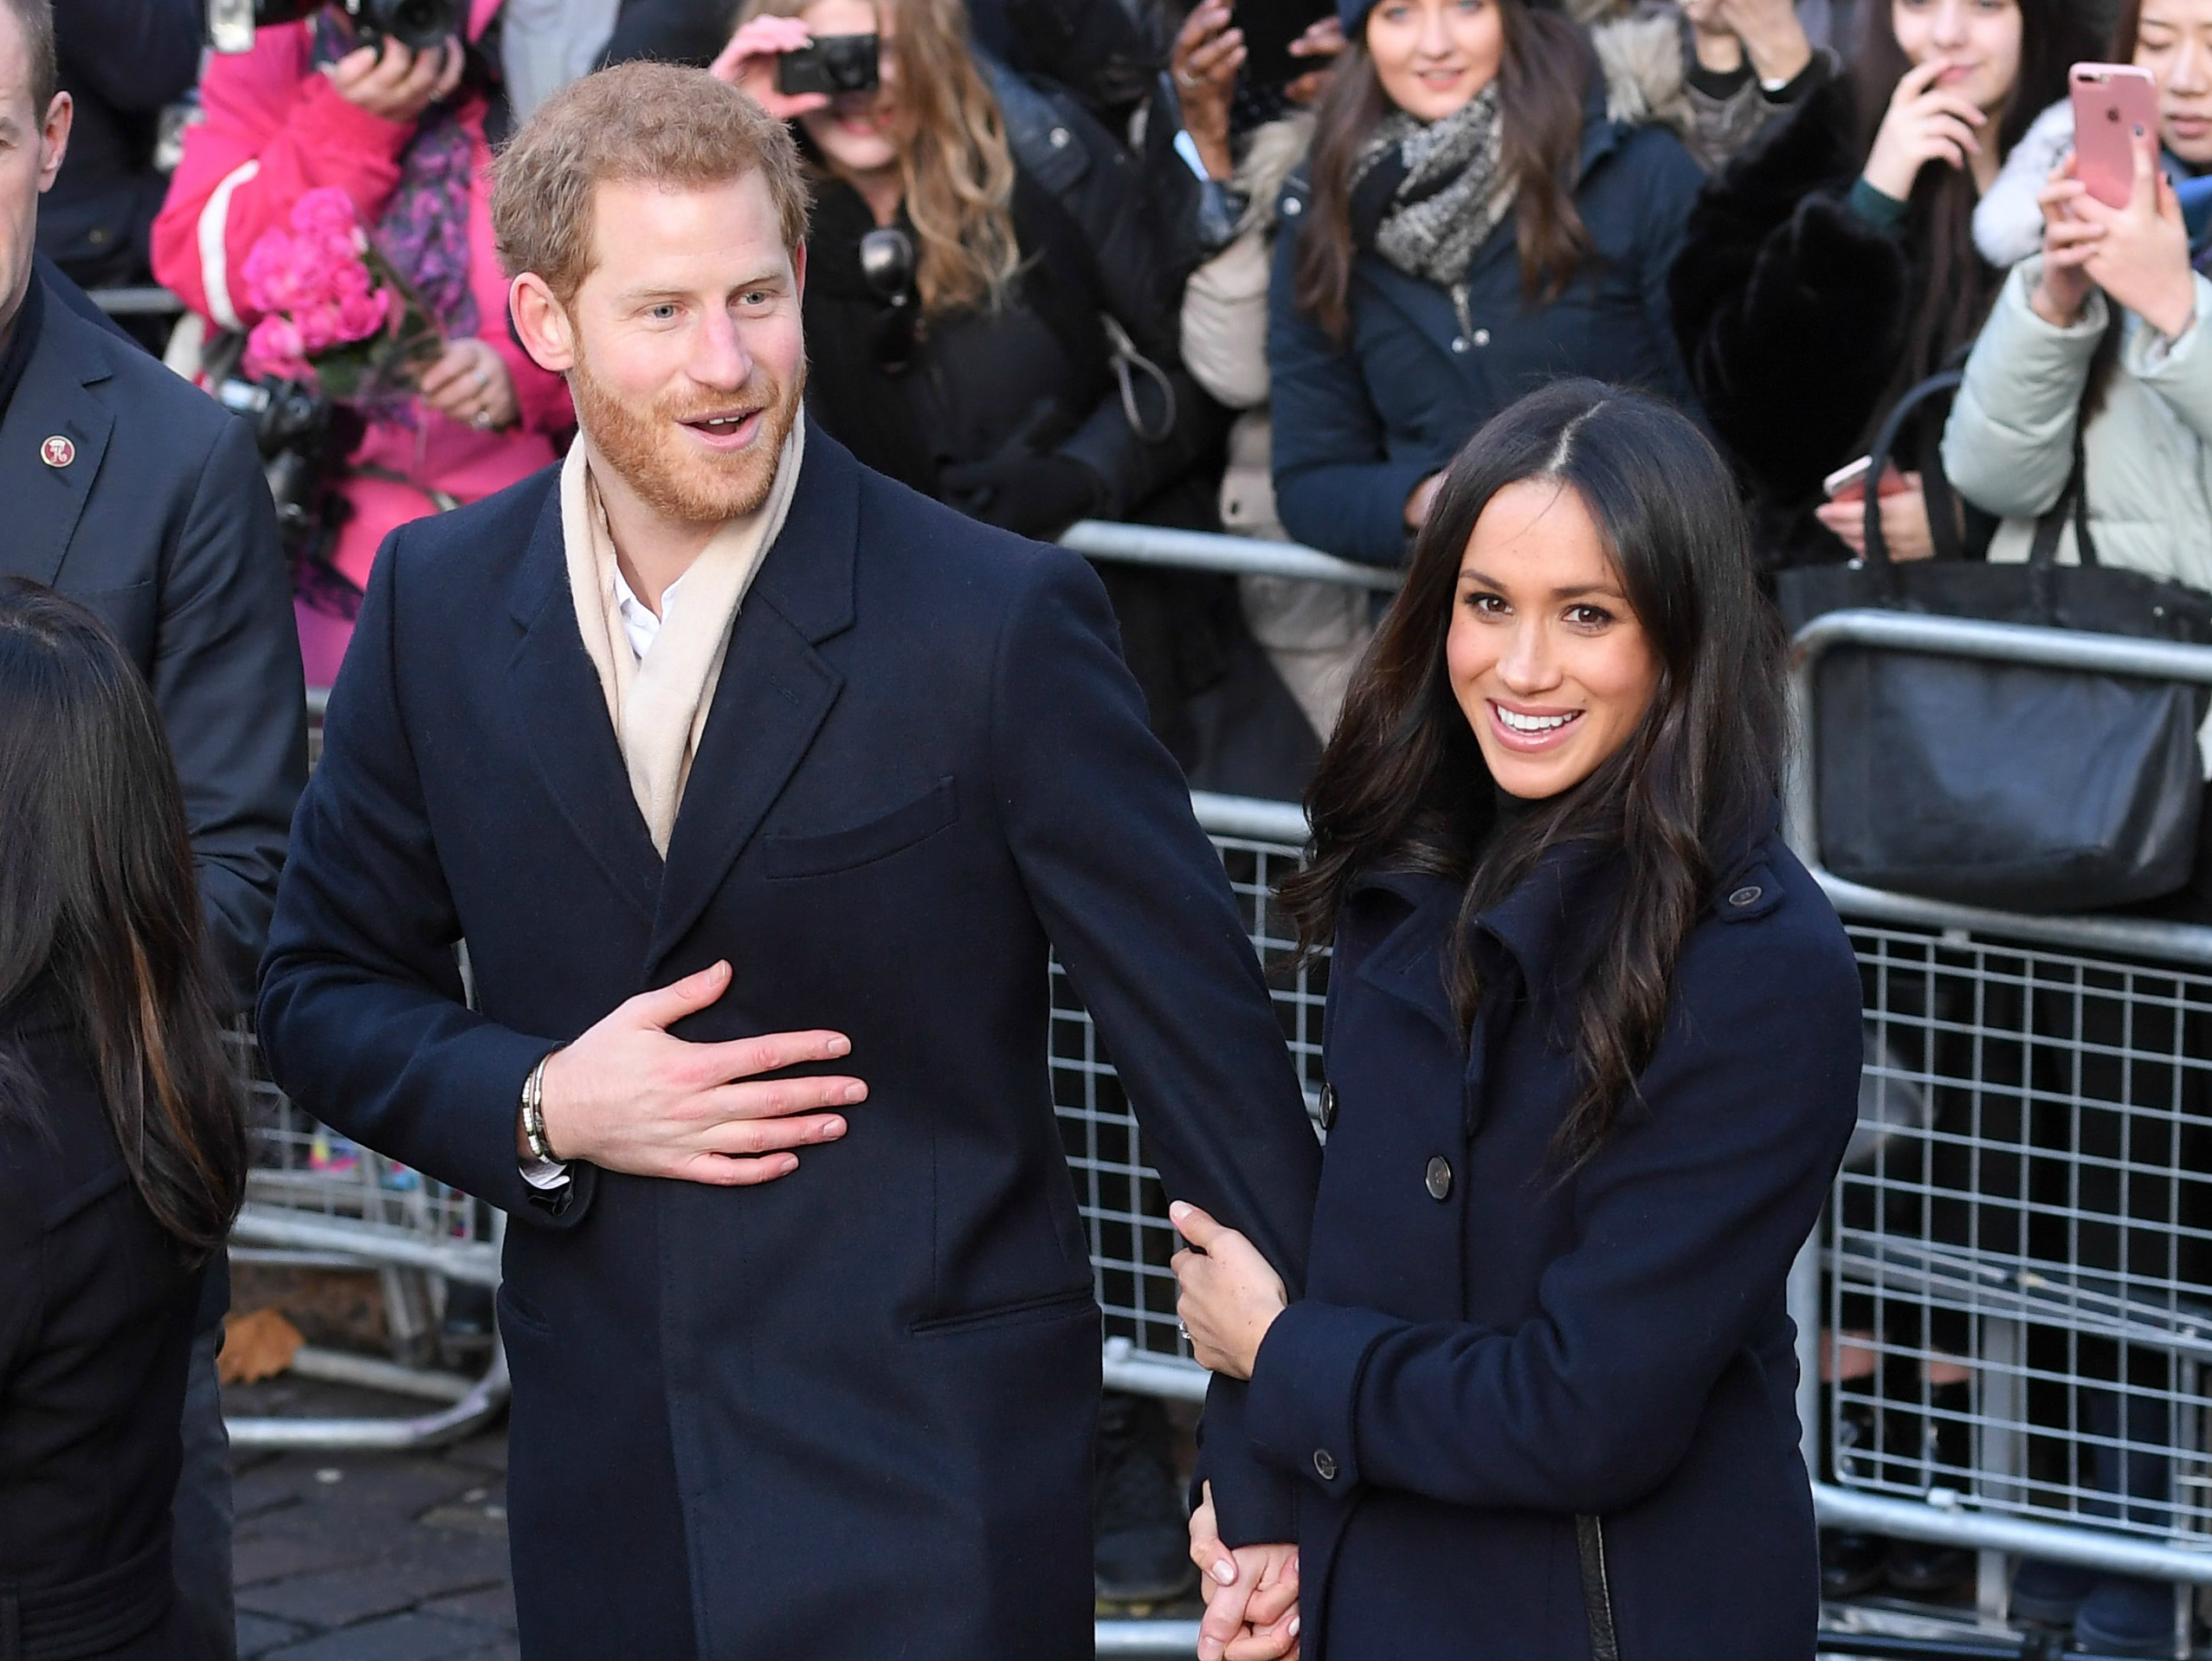 Here's who helped Meghan Markle get through her pre-wedding jitters